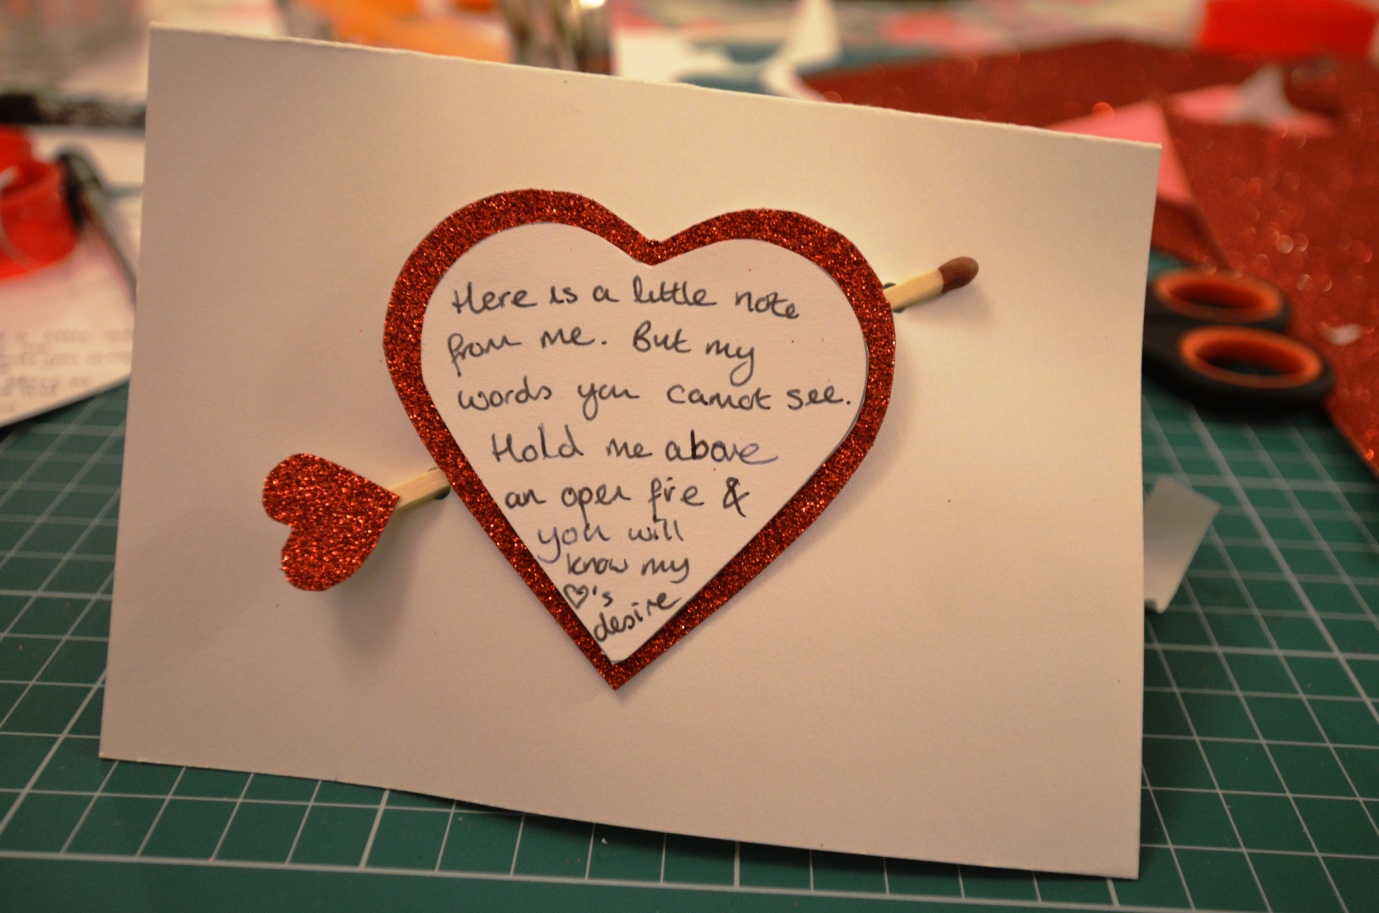 hidden message valentines day card creative crafting a secret valentines message 6707